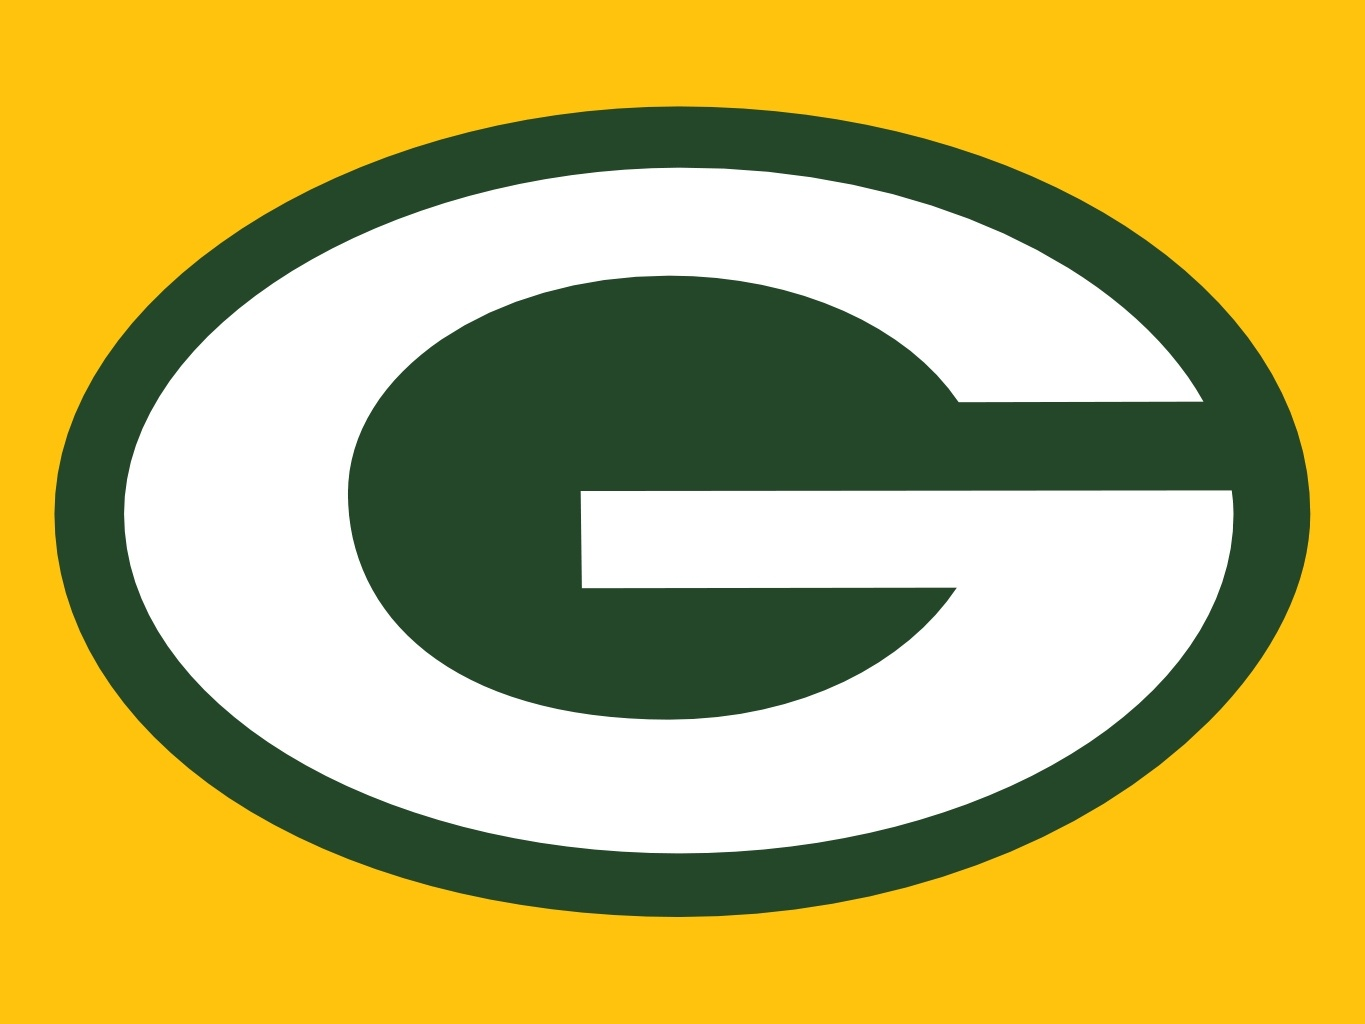 Green Bay Packers Stencil Clipart | Free Download Best Green Bay - Free Printable Green Bay Packers Logo